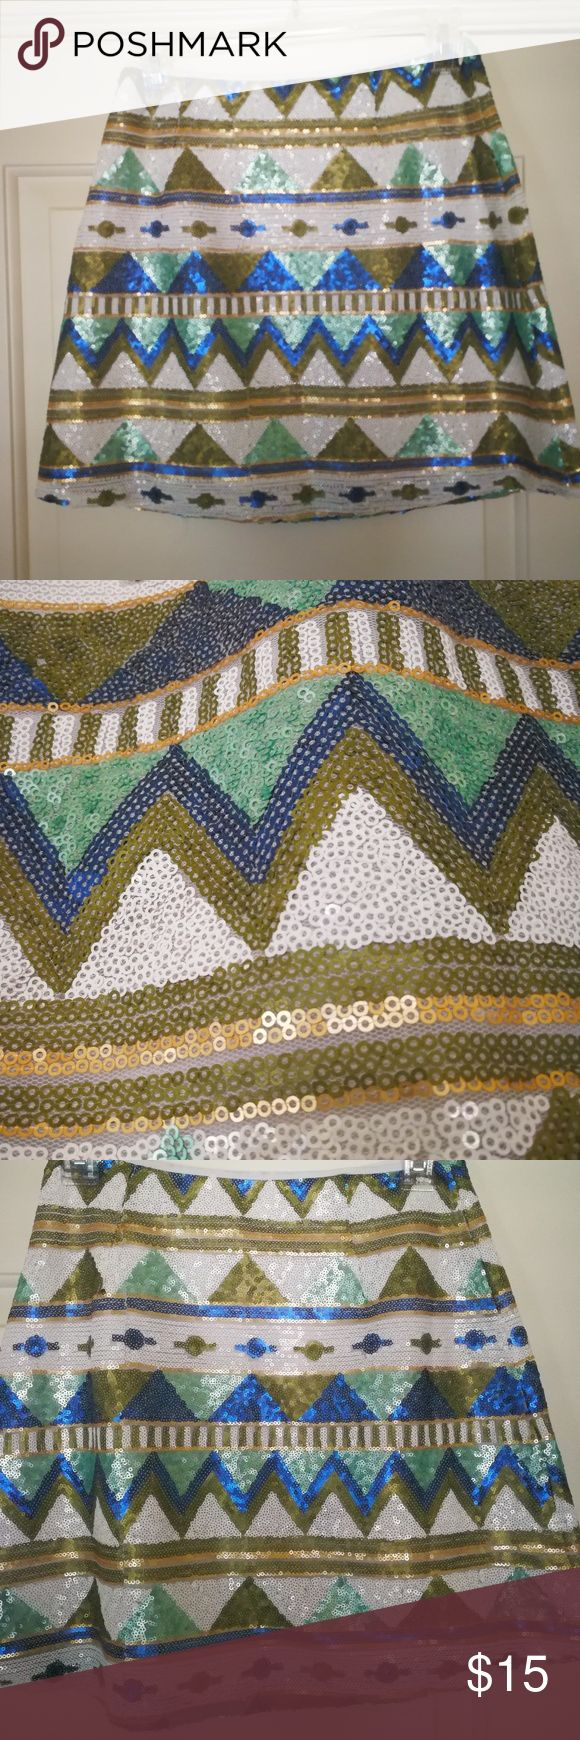 Aztec sequin skirt Aztec pattern sequin skirt sequins all over excellent condition Altar'd State Skirts Mini